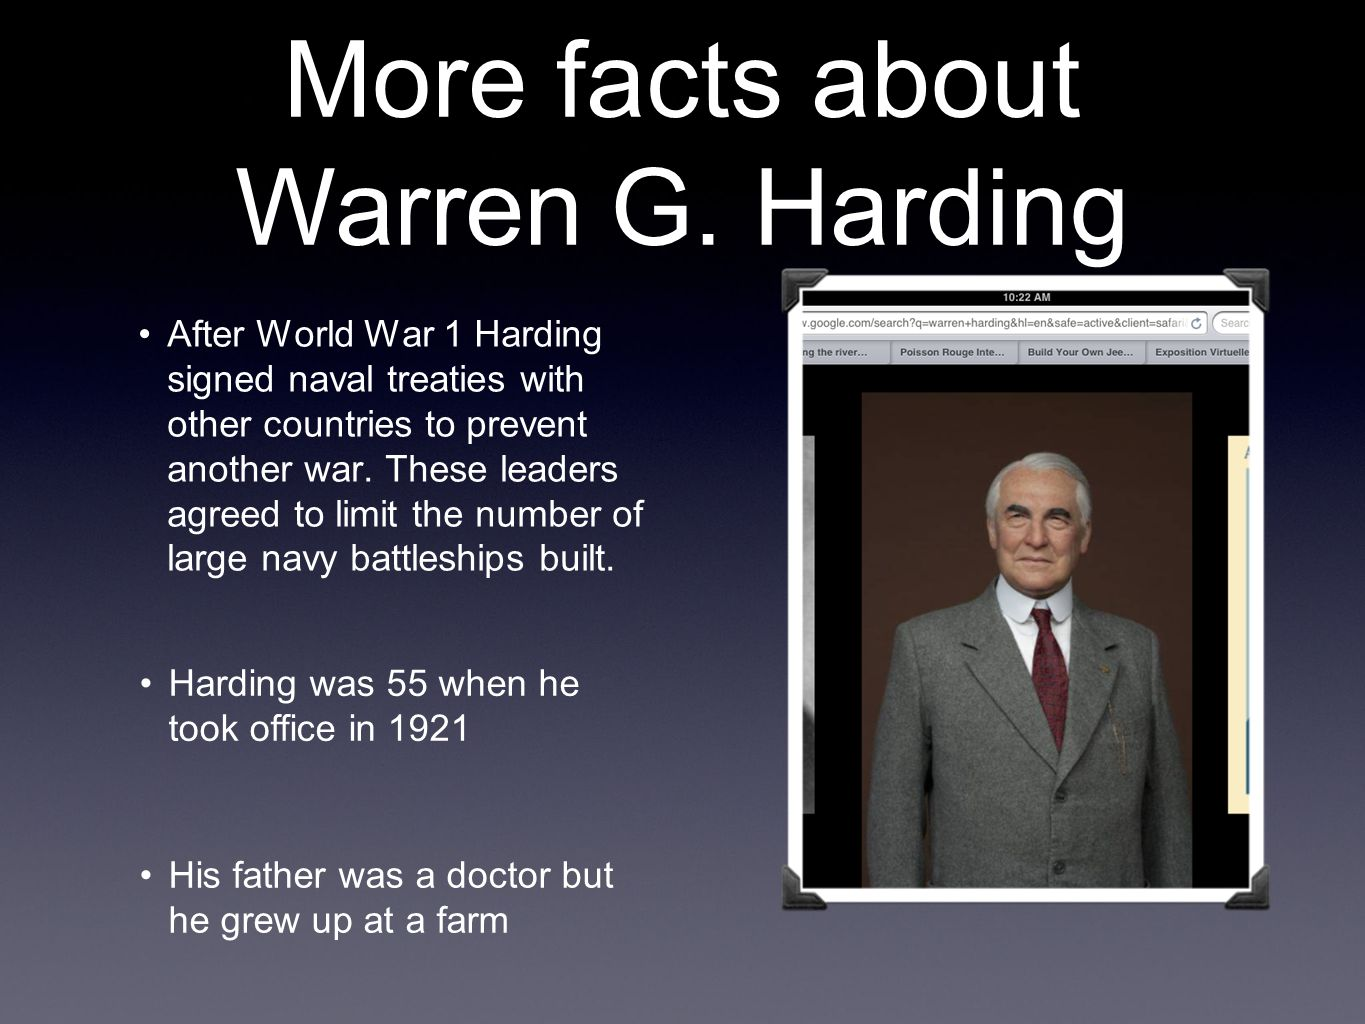 More facts about Warren G. Harding